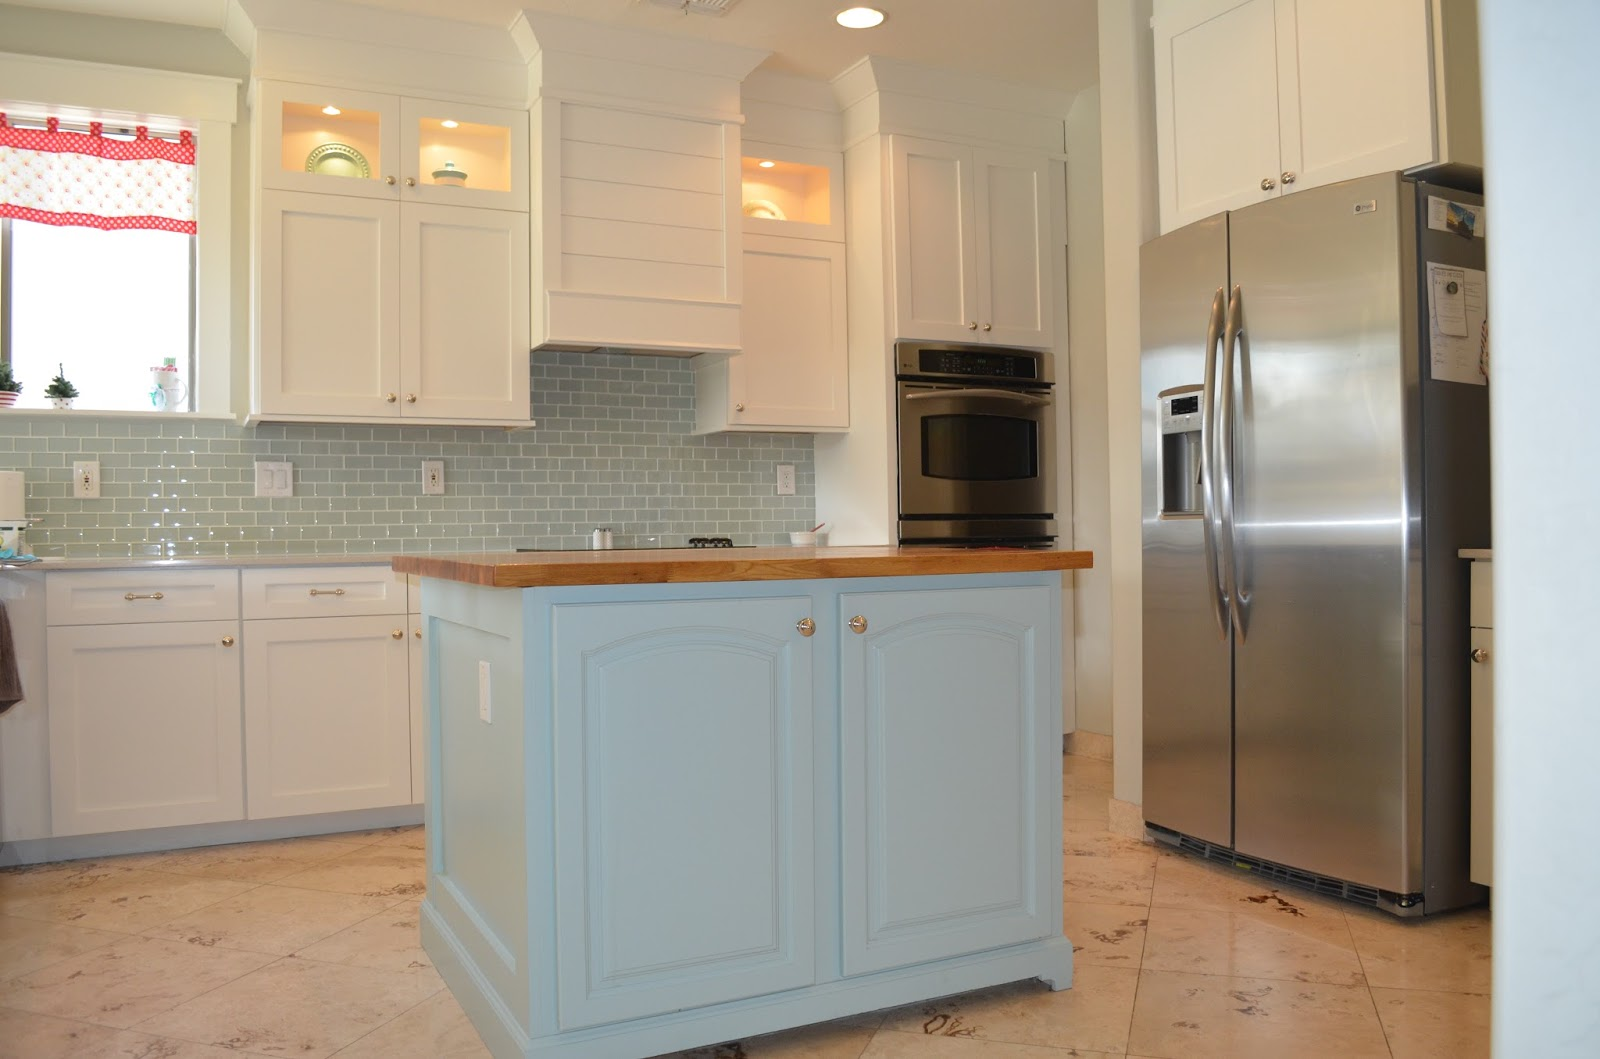 Kitchen Transformation Before And After: Christine's Favorite Things: Before And After Kitchen Makeover